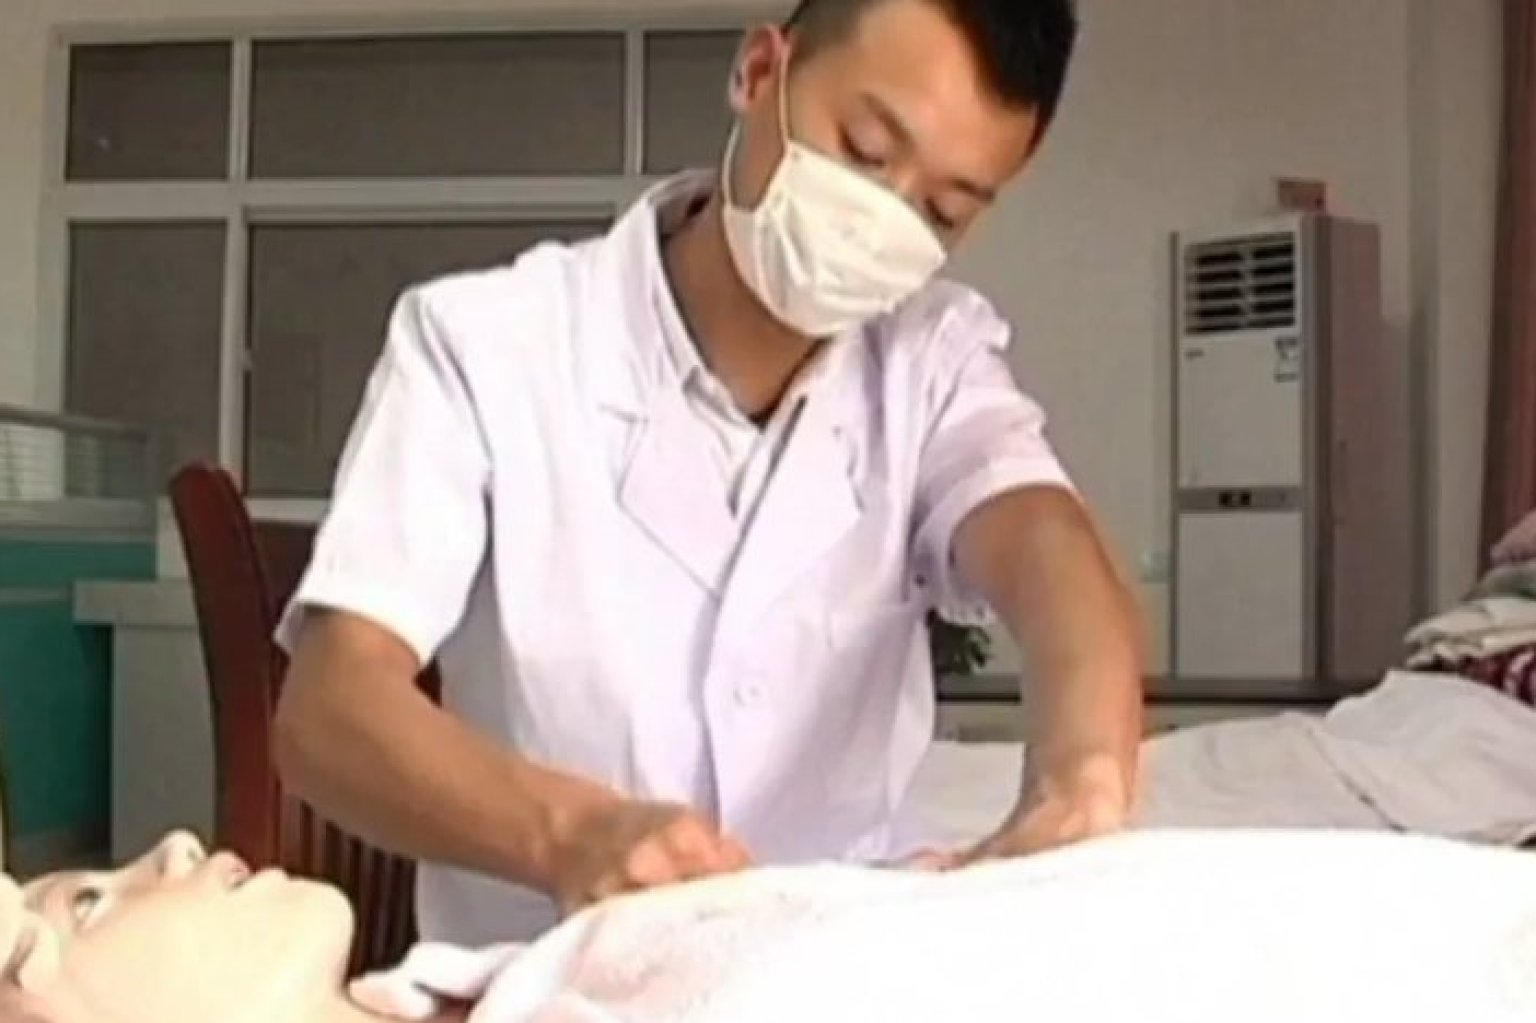 Male Breastfeeding Expert Helps Women to Produce Milk ...